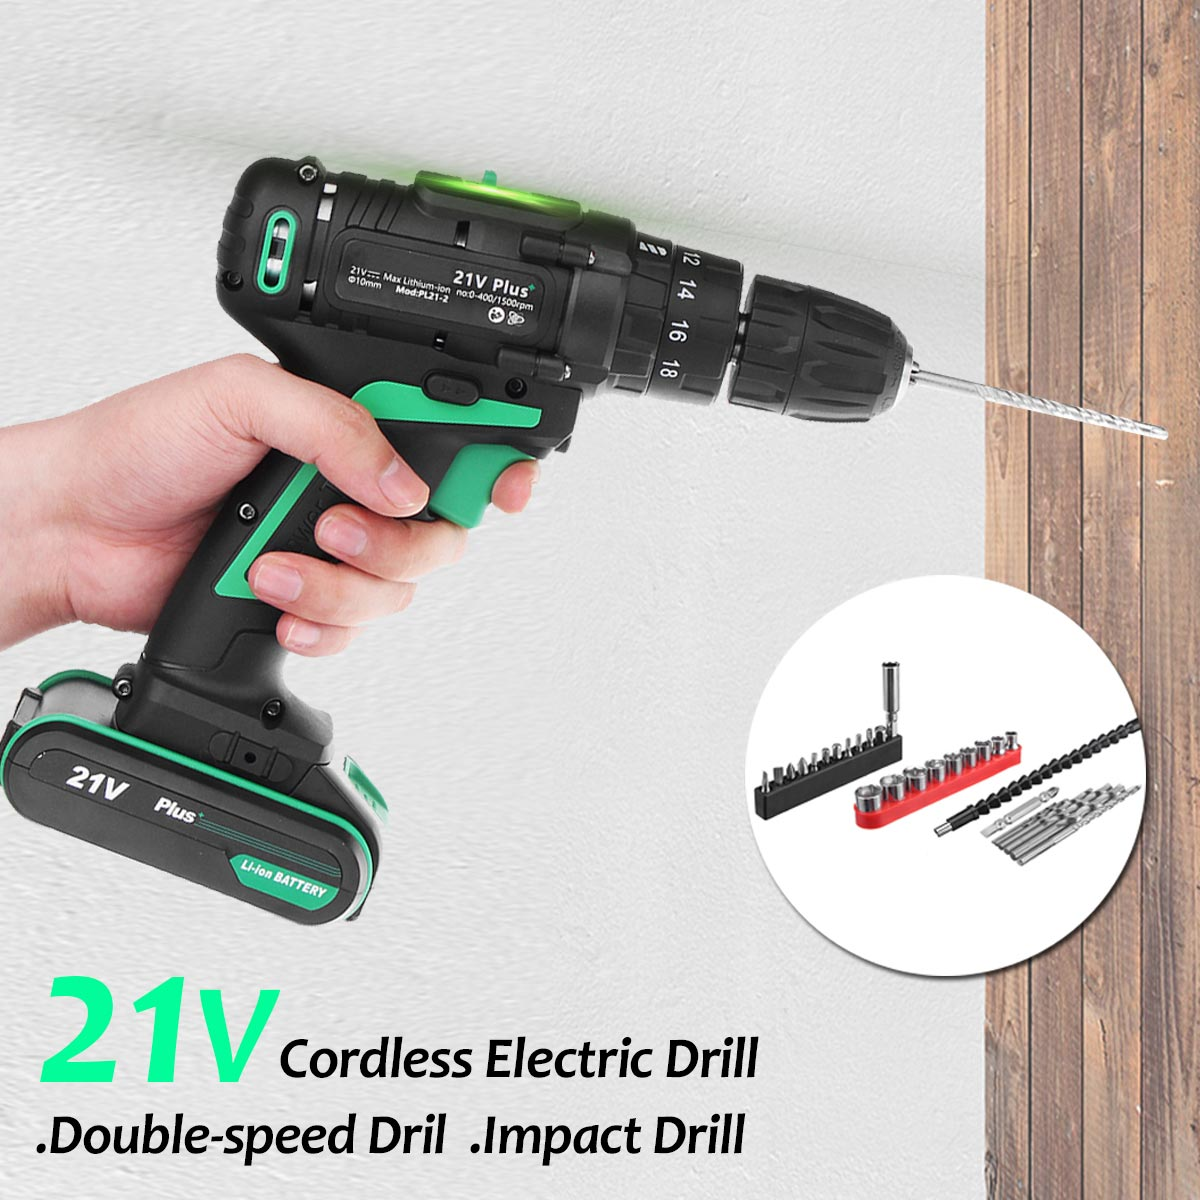 AC 100-240V 21V Plus Cordless Electric Screwdriver Rechargeable Power Drills Tools Lithium-ion Battery Electrical Hand Drill Set